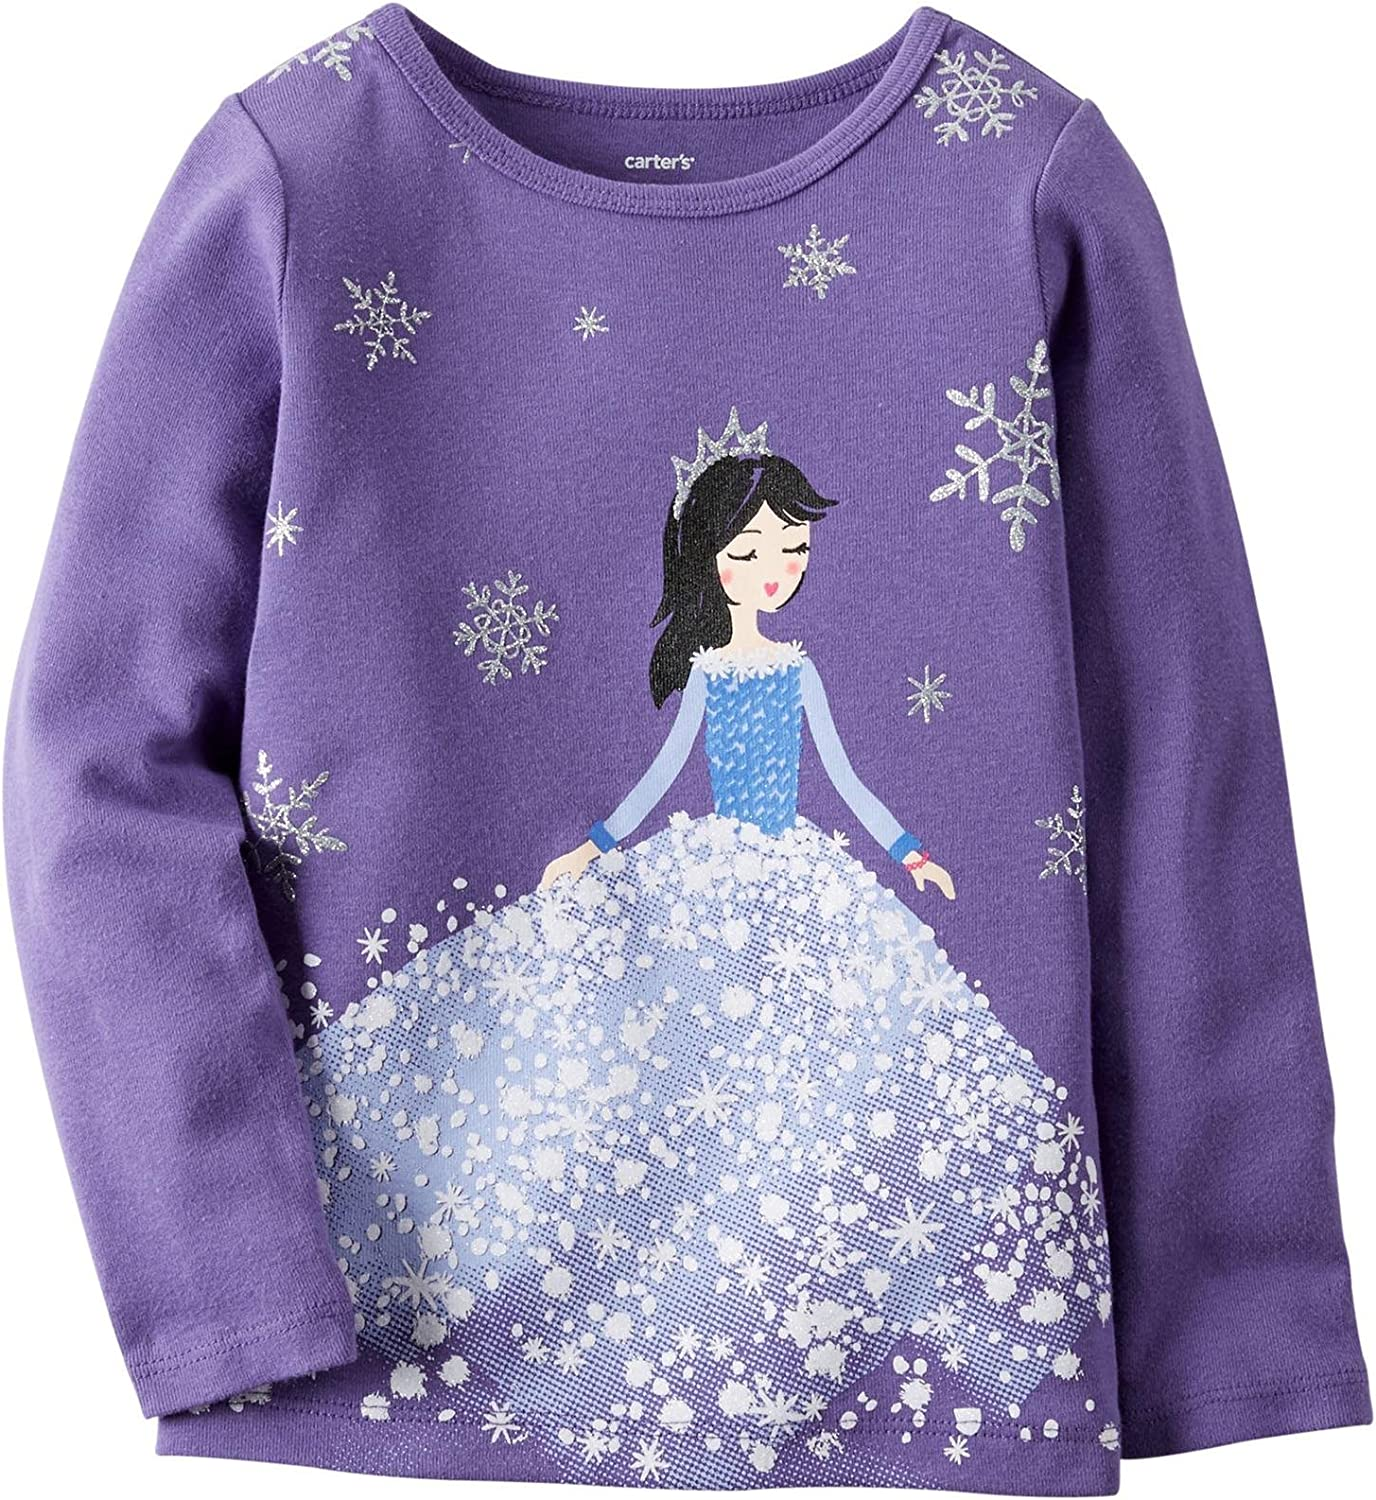 Carter's Baby Girl's Graphic Top - Princess - 24 Months